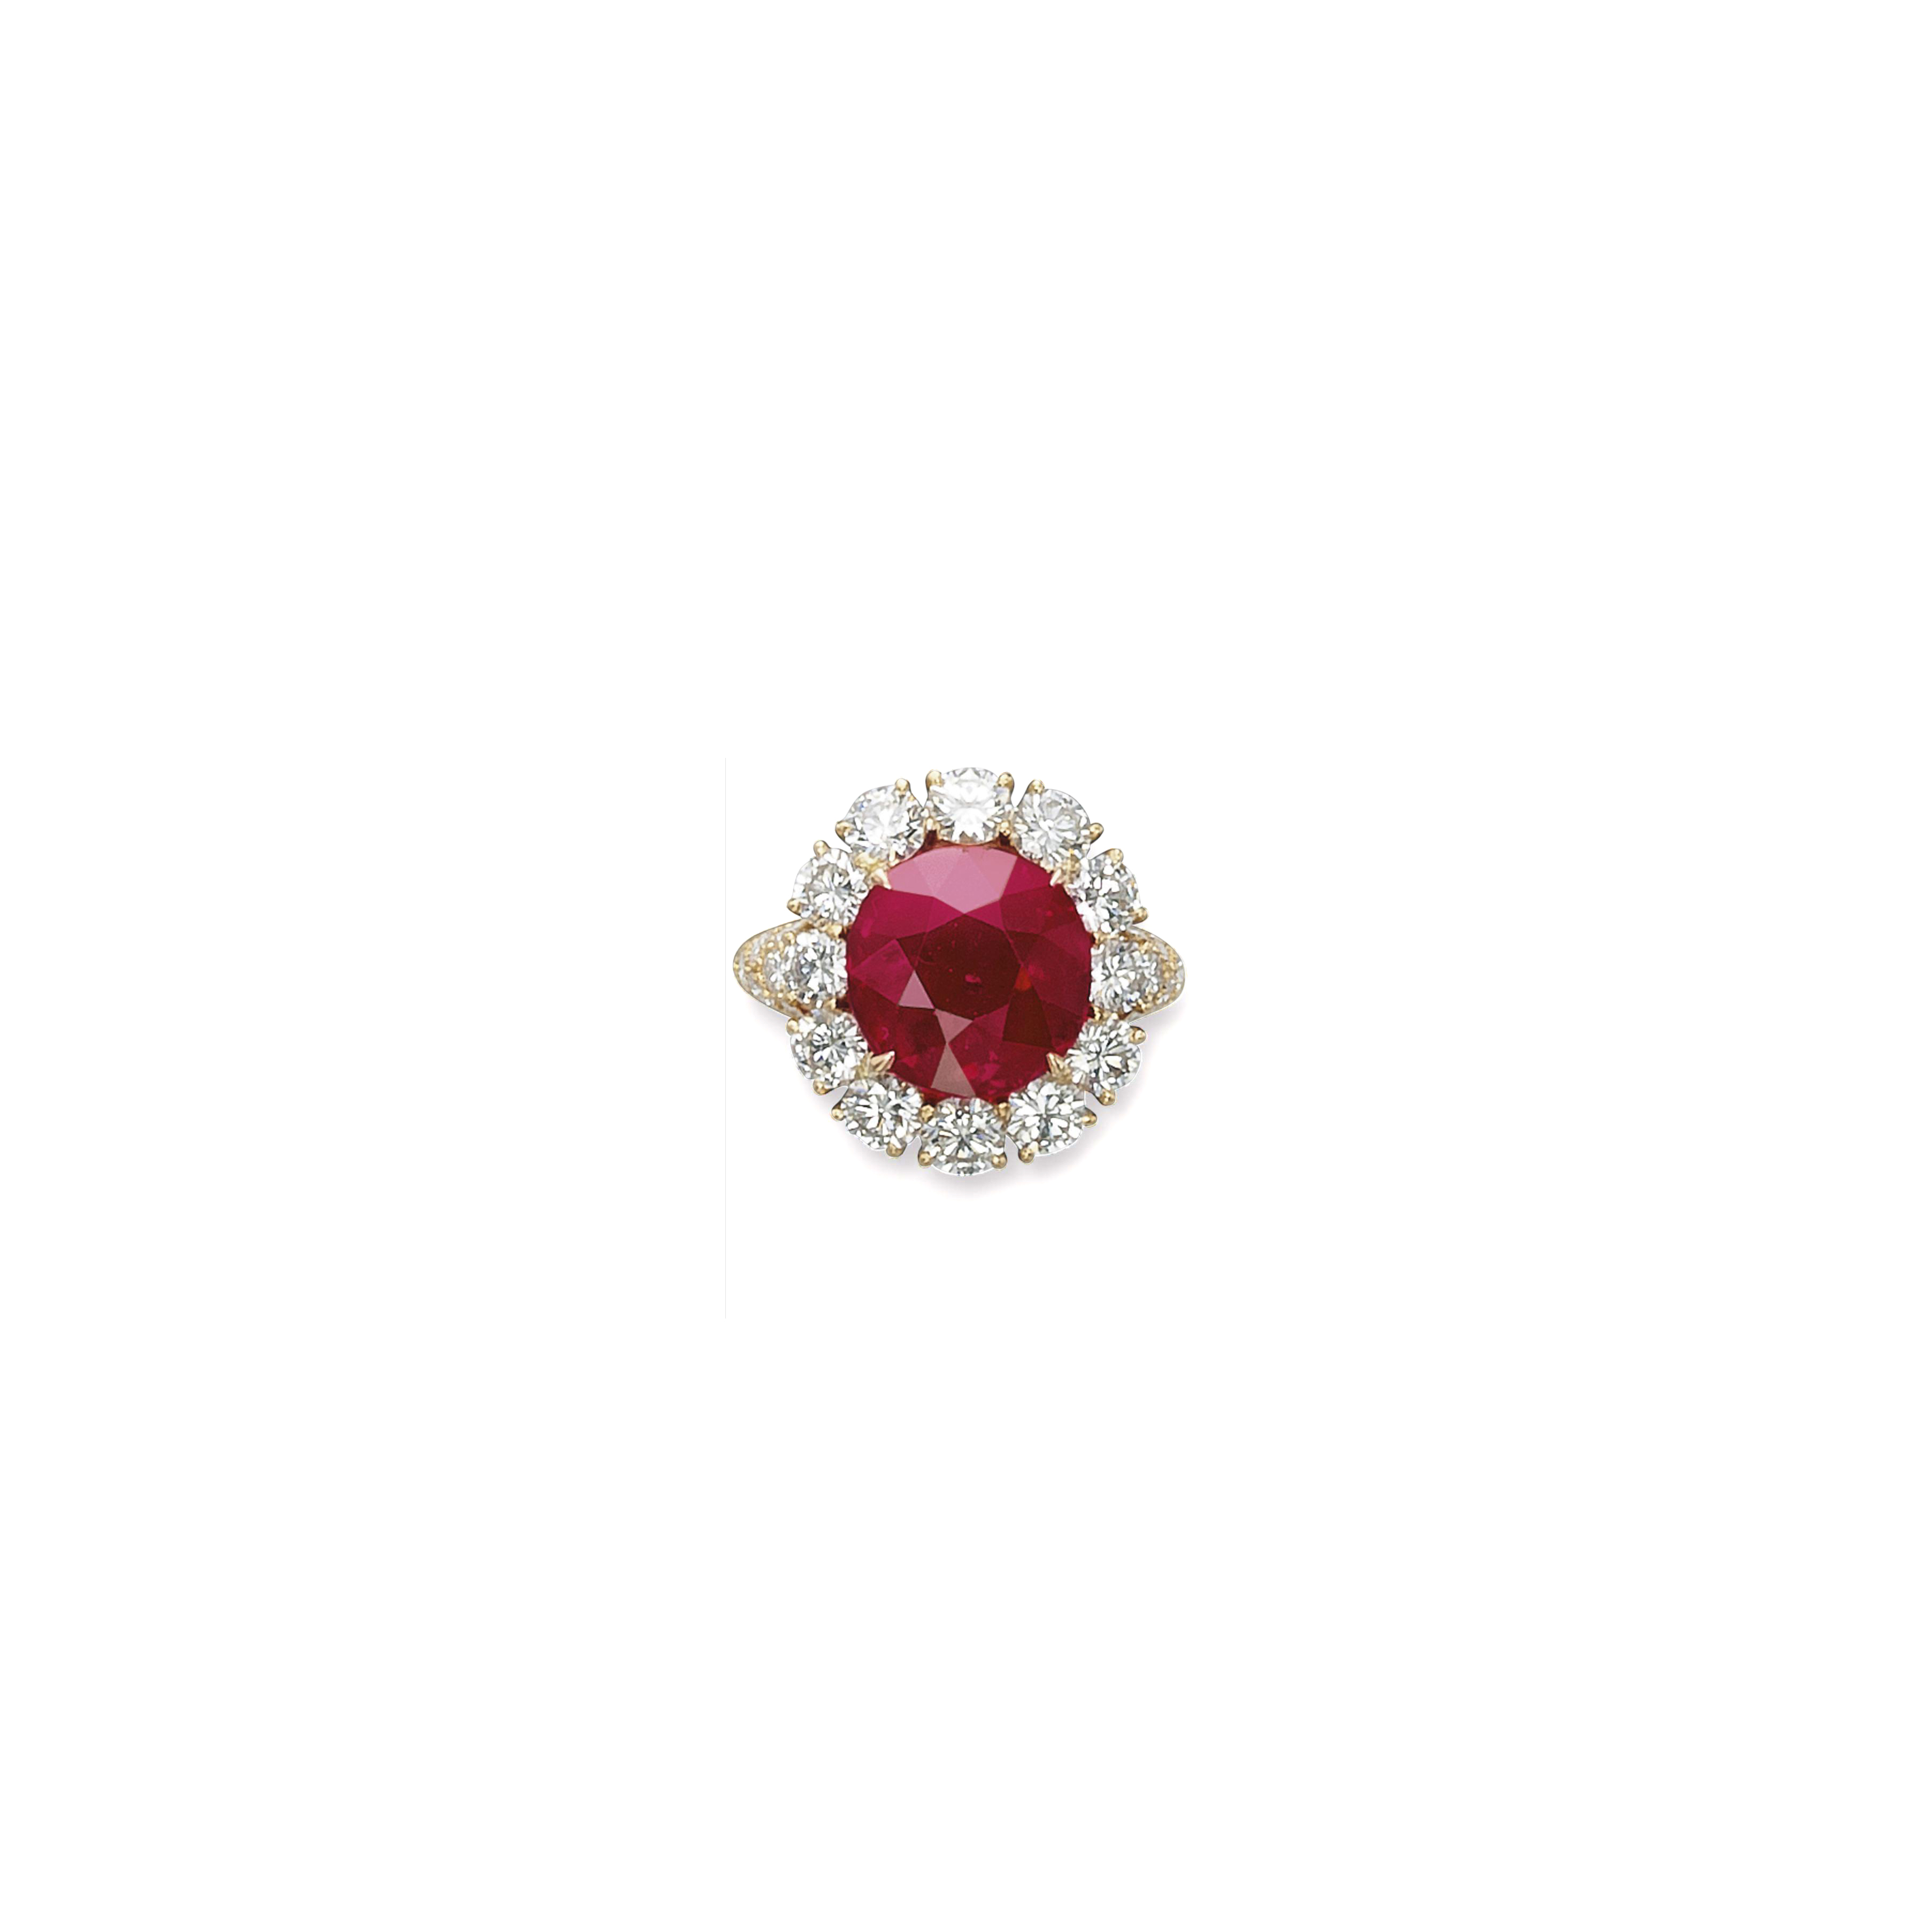 A SUPERB RUBY AND DIAMOND RING, BY VAN CLEEF & ARPELS